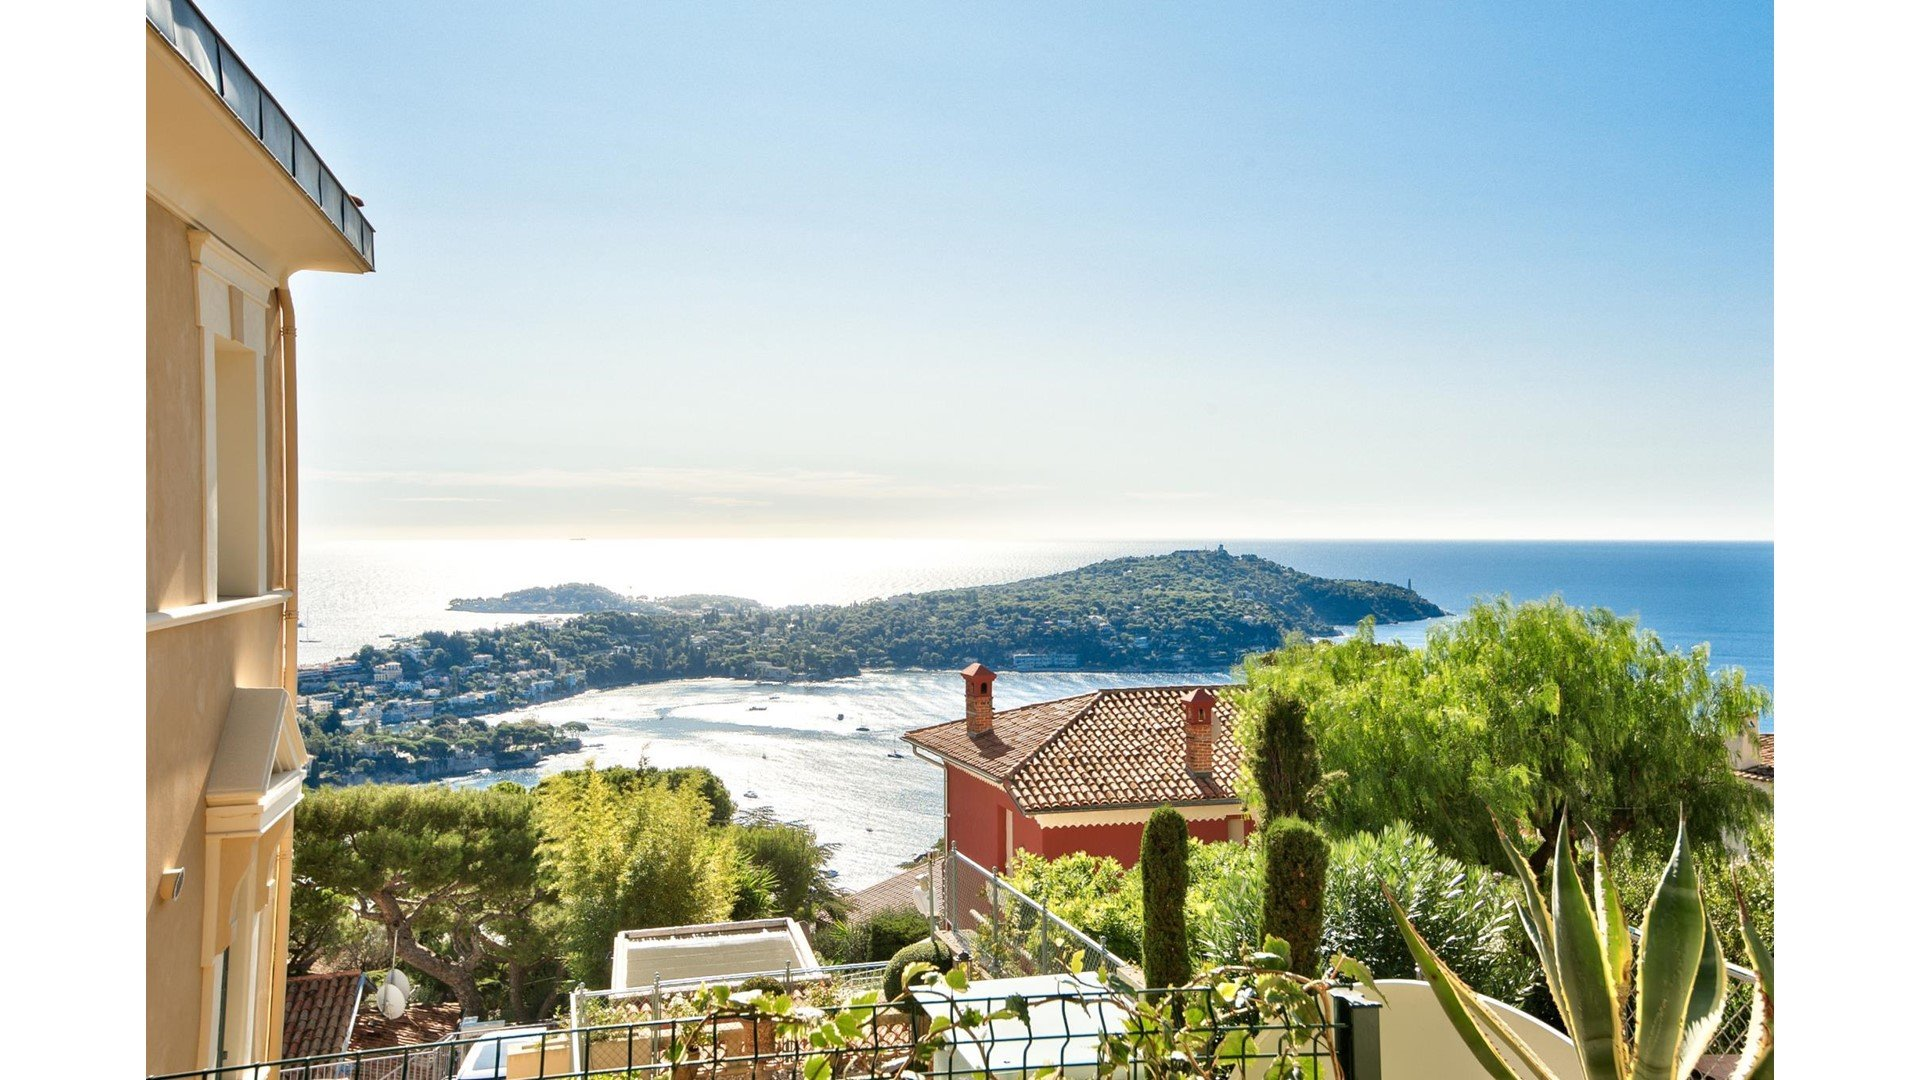 Apartment in Villefranche-sur-Mer with views over Cap Ferat